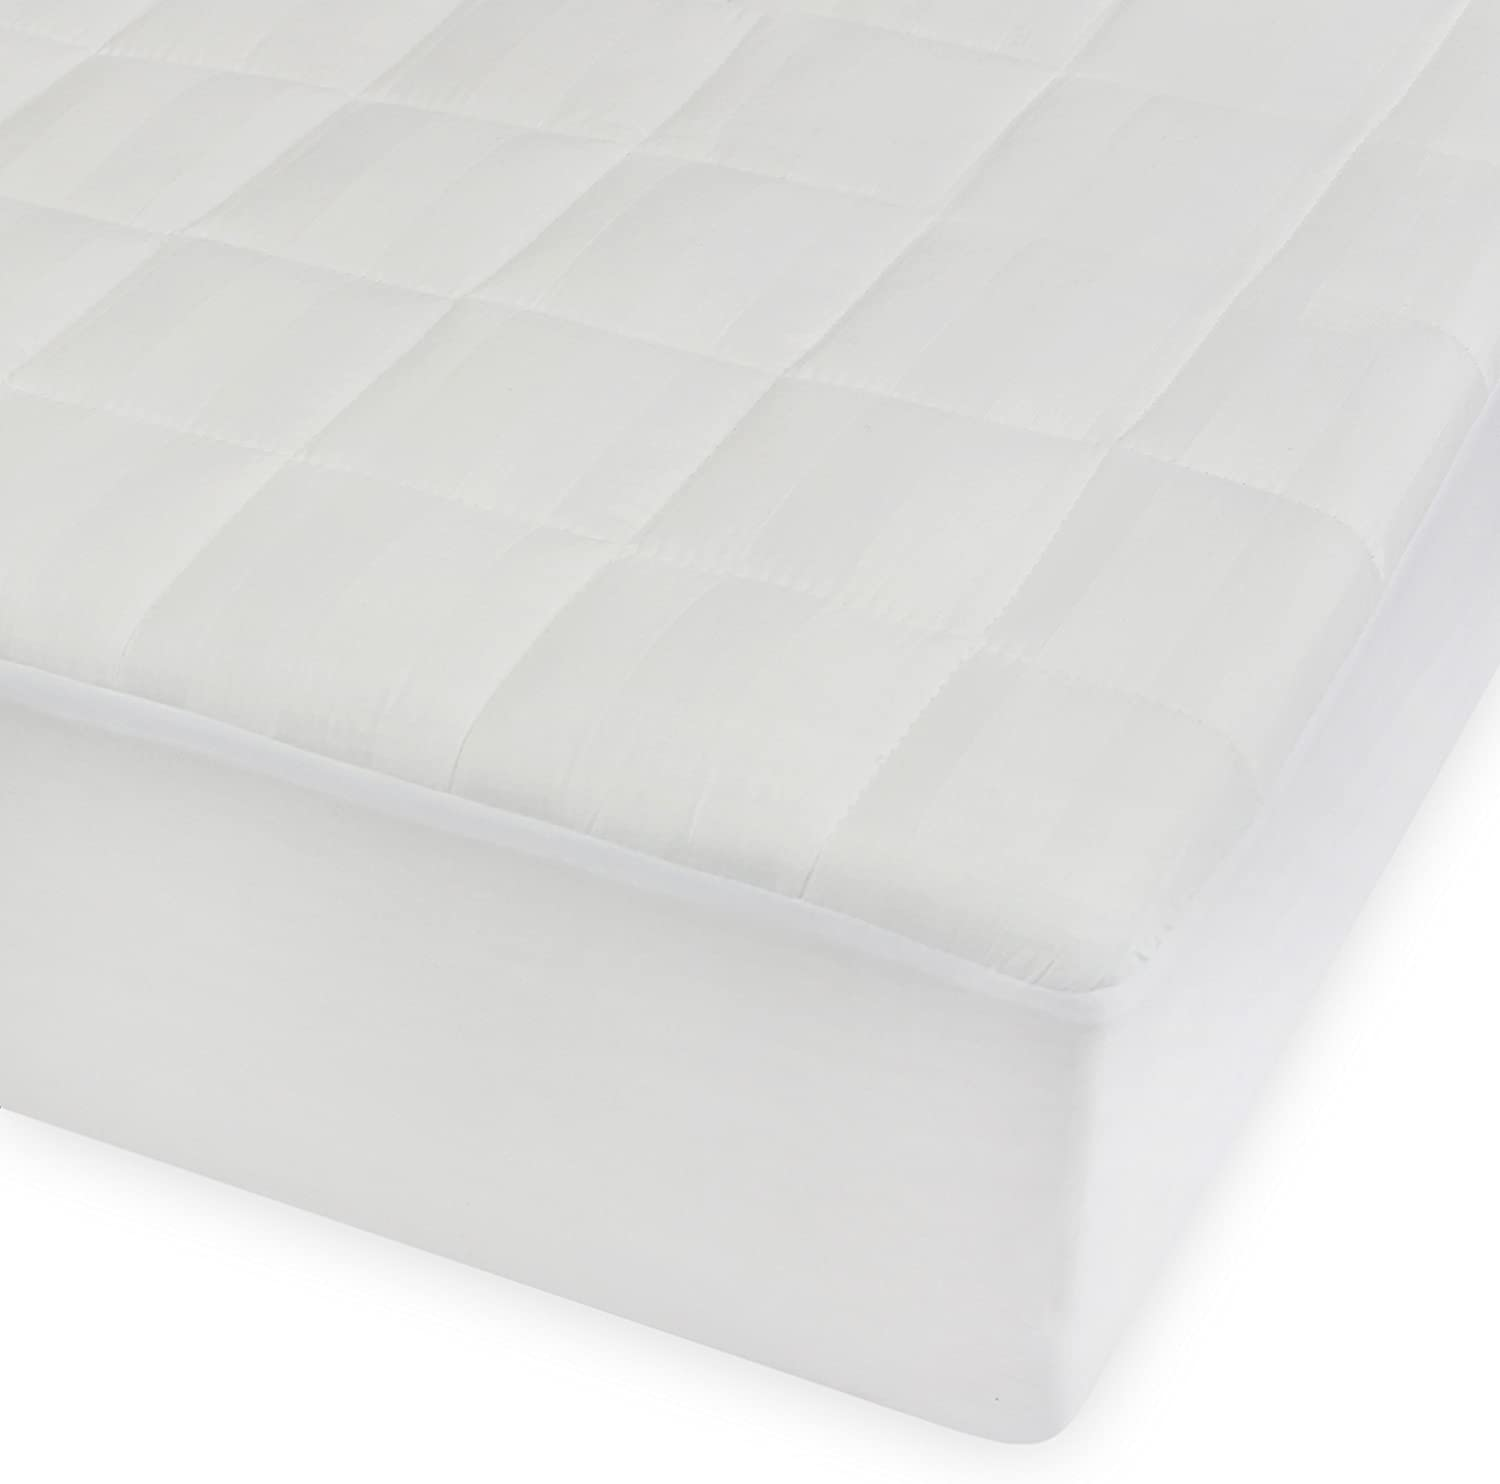 Century Home Comfort Home Quilted Cotton Mattress Pad, Twin